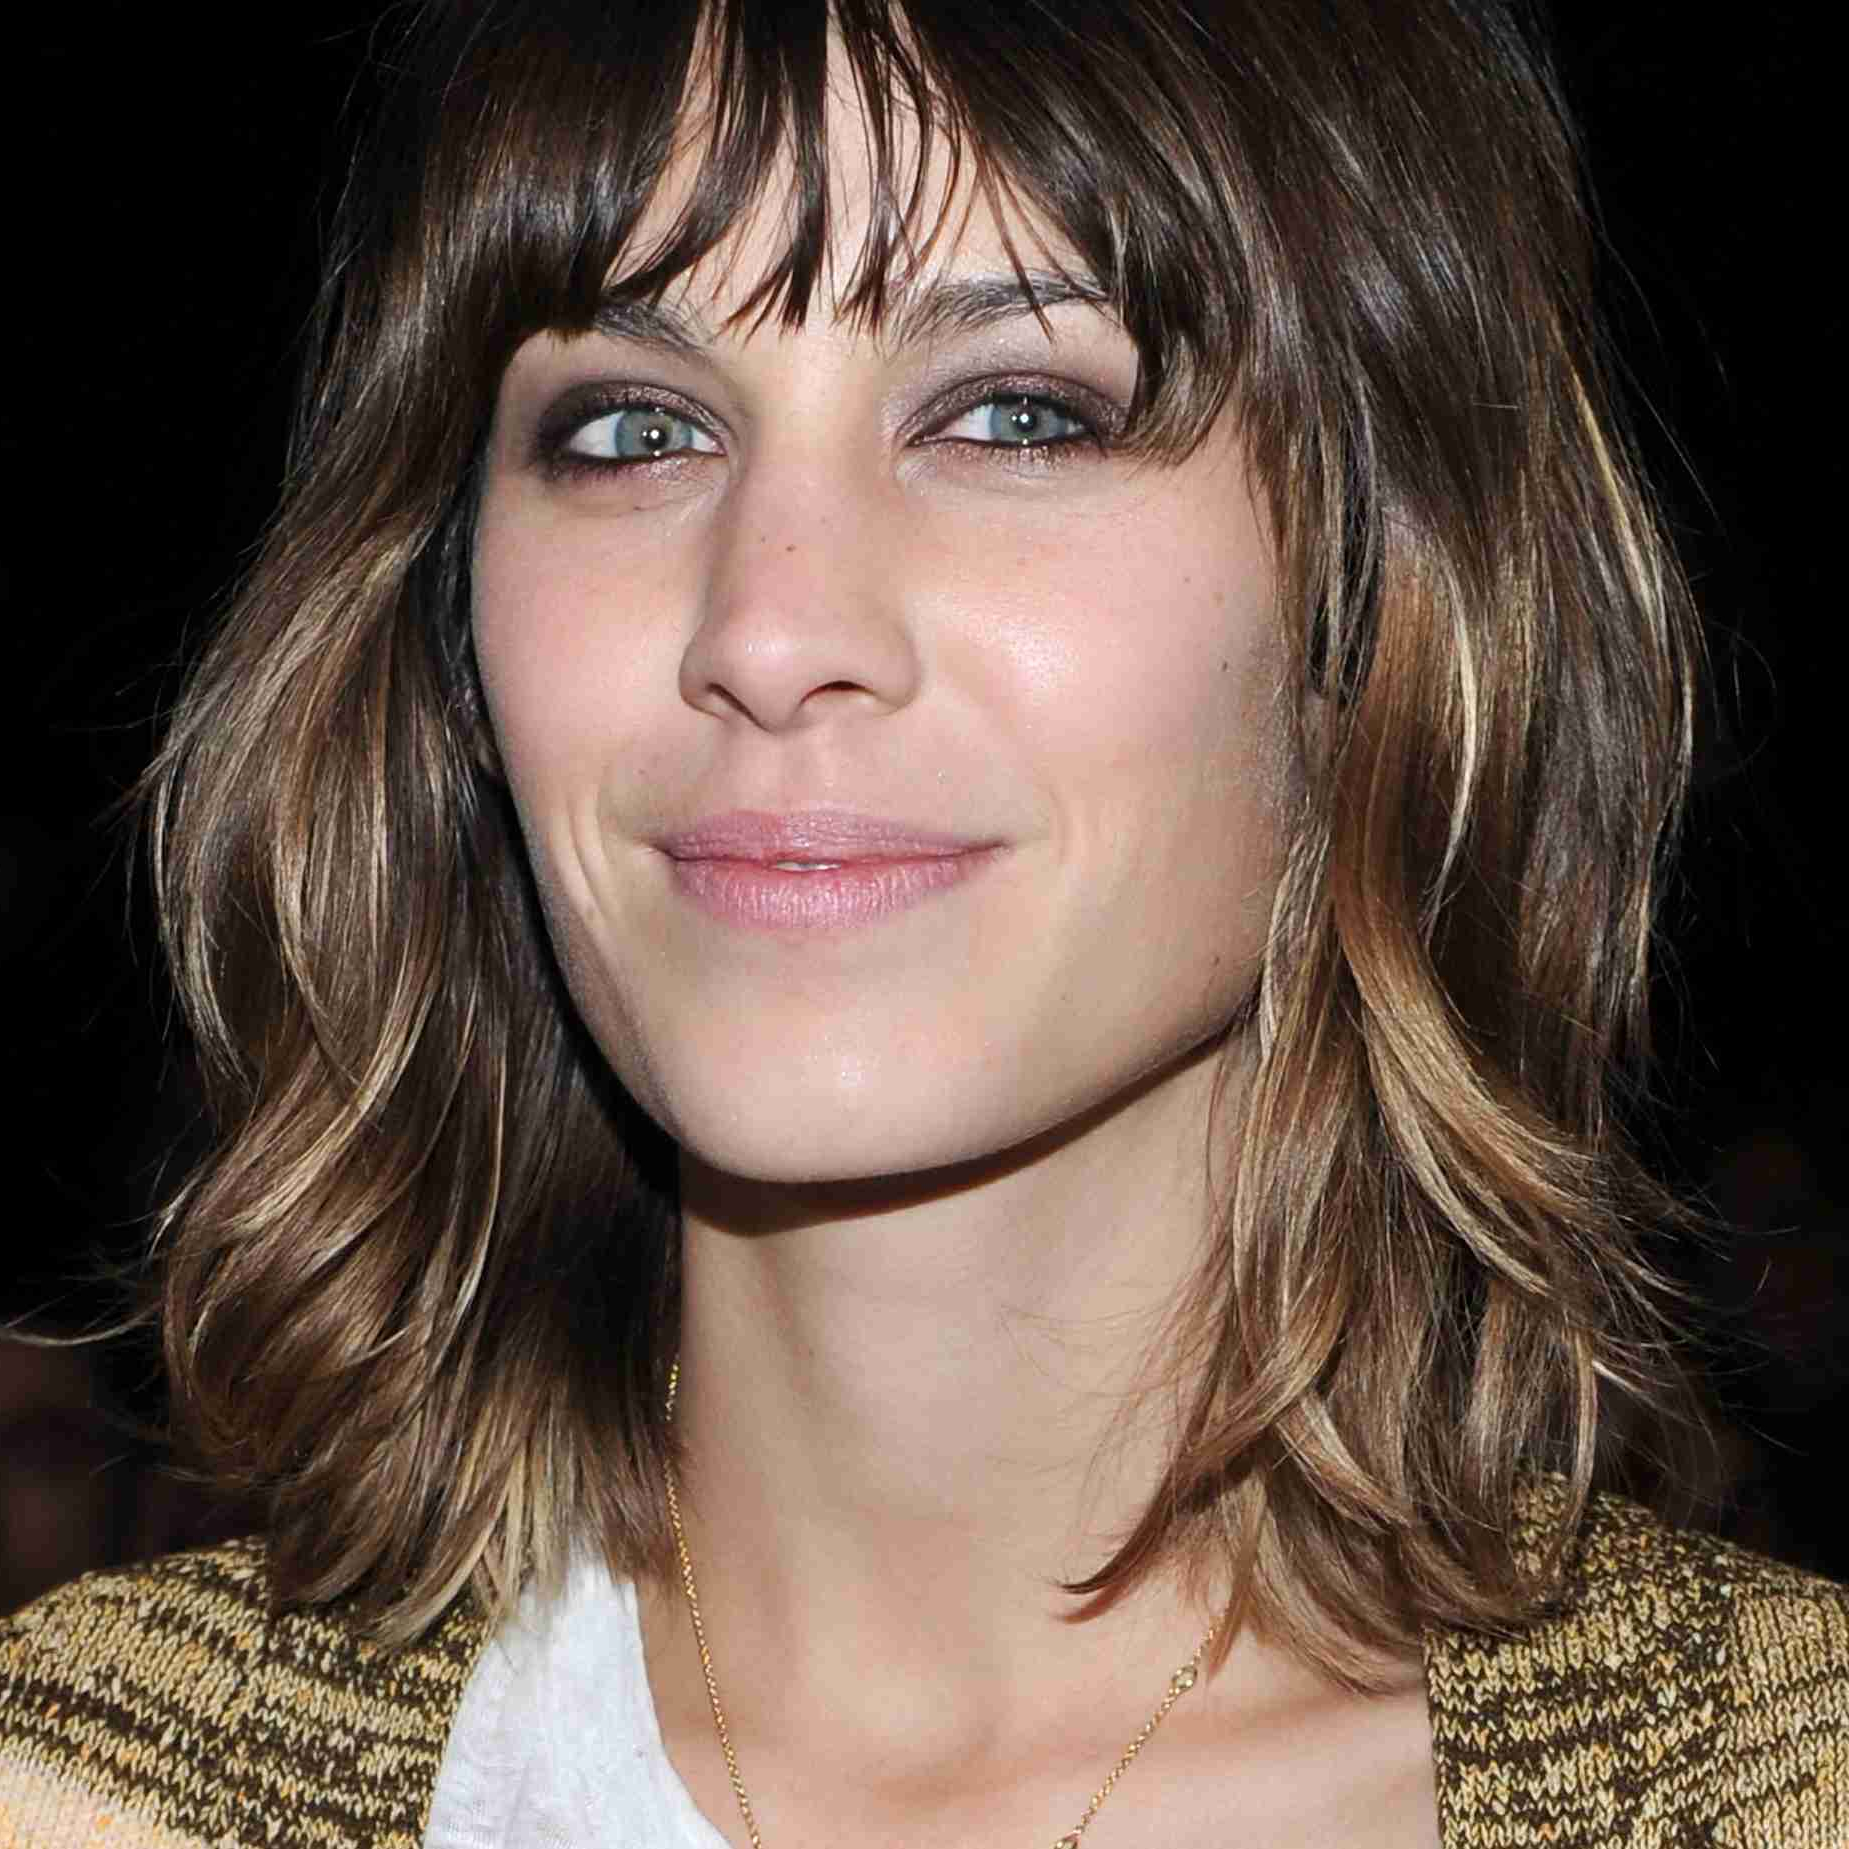 Can't Miss Shag Haircuts, From Short To Long Throughout Most Popular Shoulder Length Shag Haircuts With Babylights (View 11 of 20)